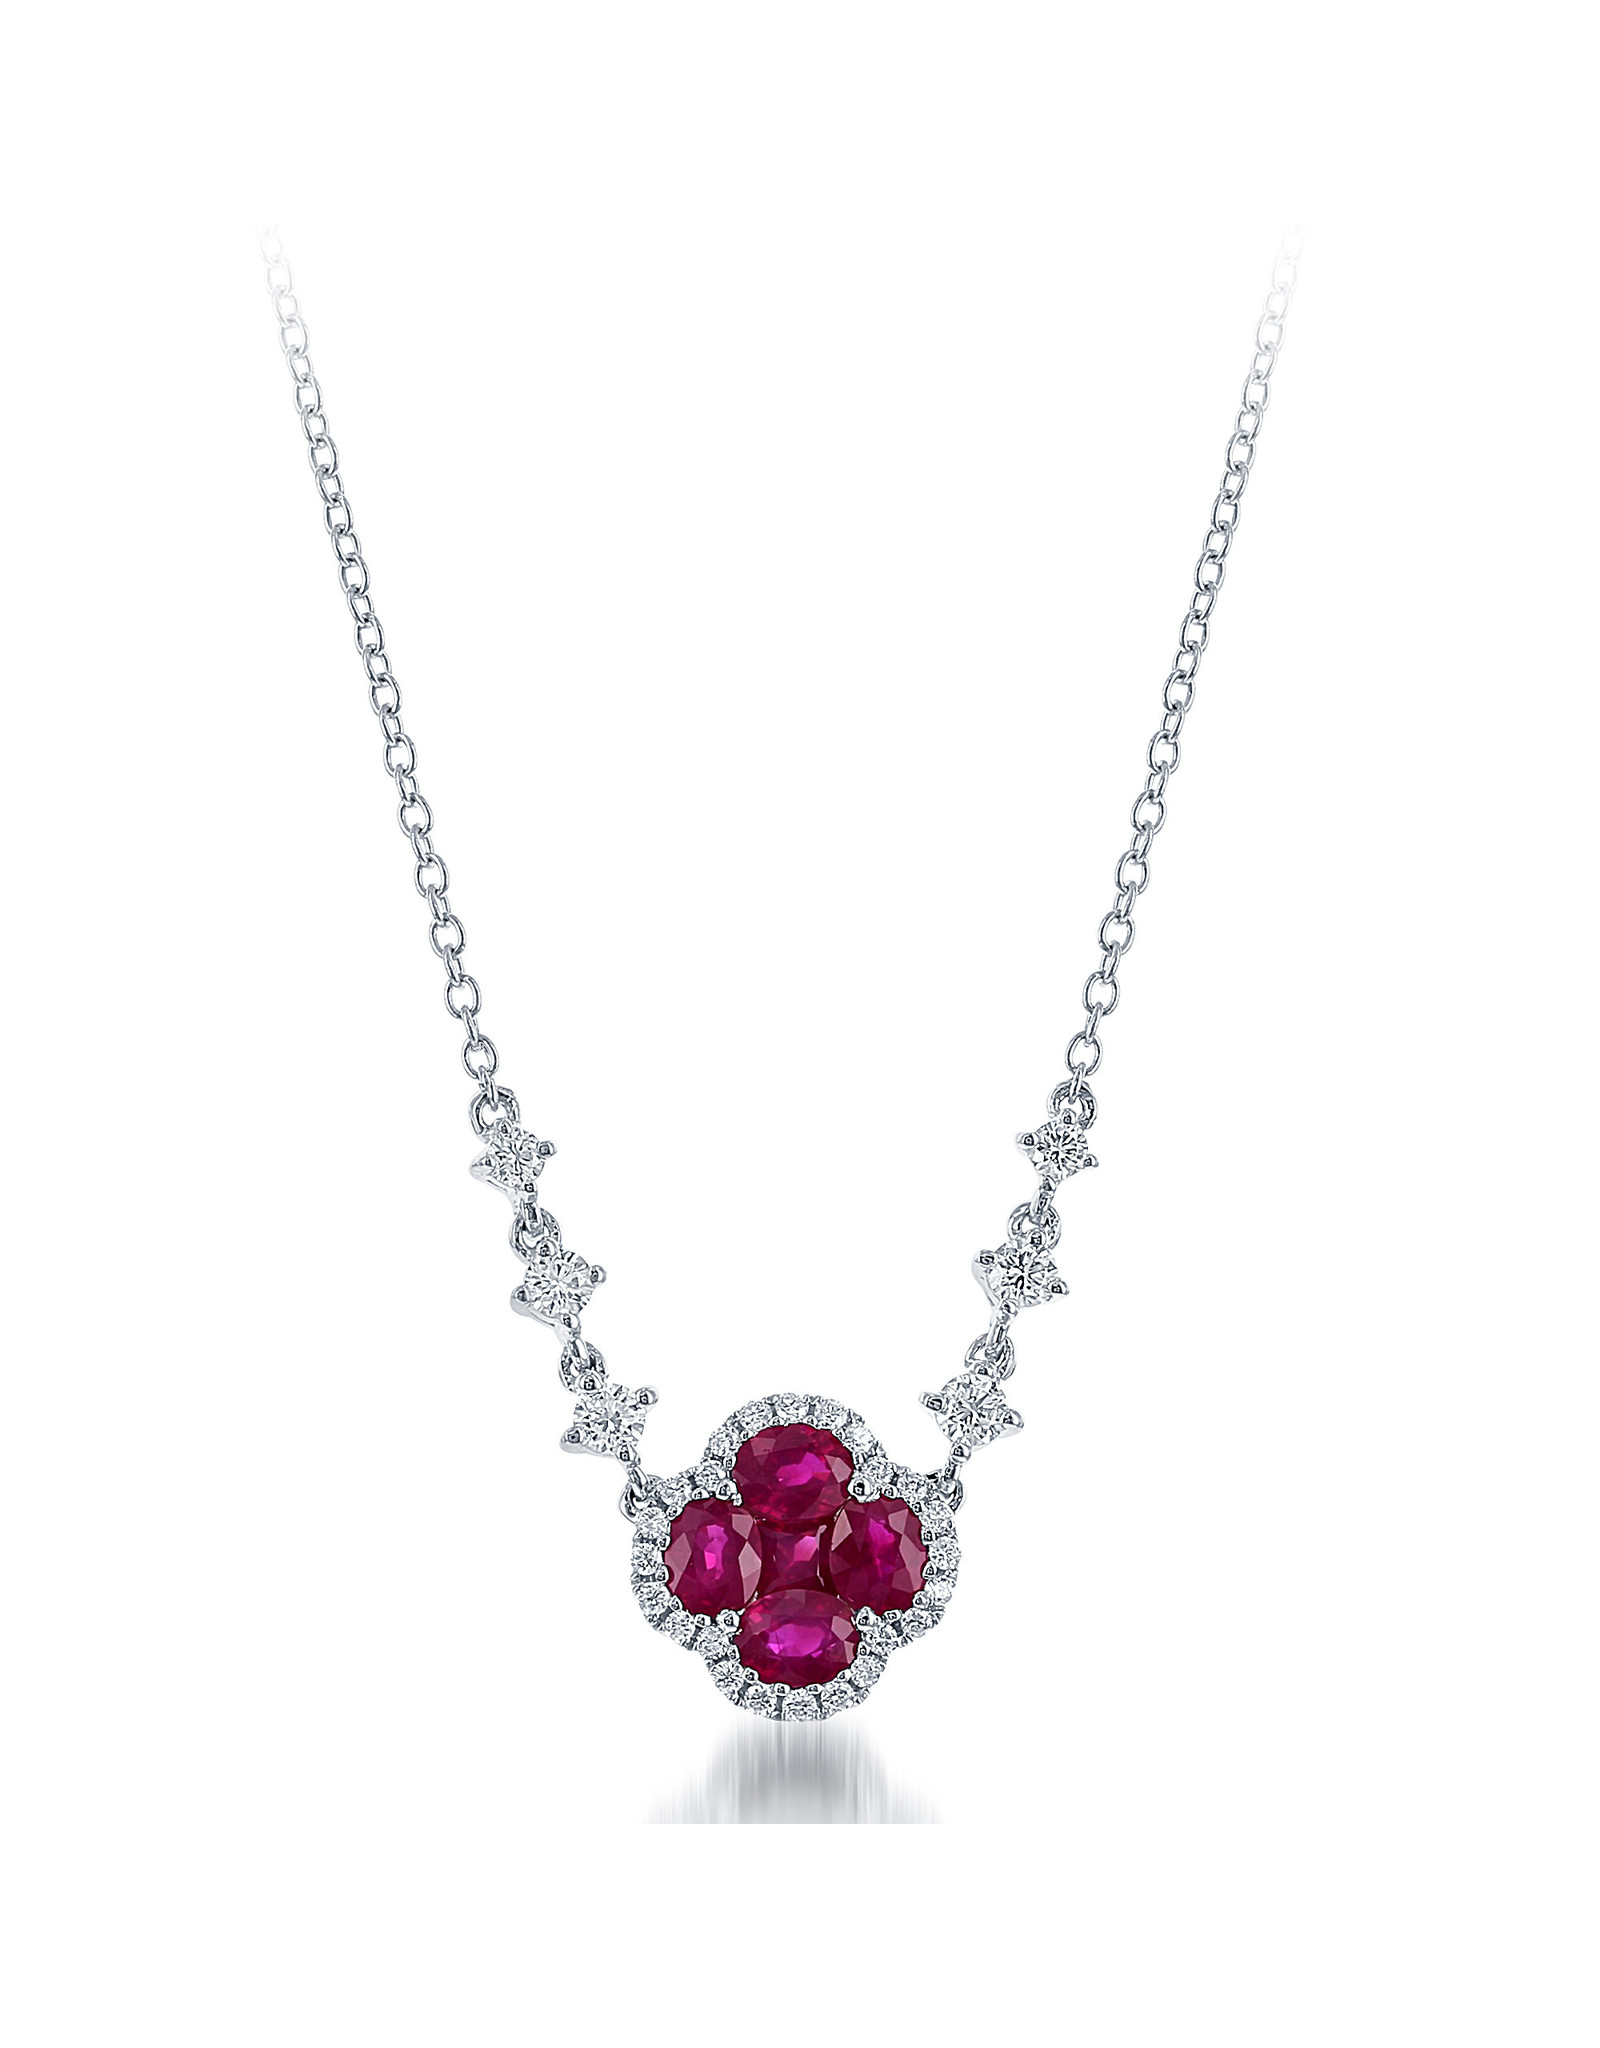 14K White Gold Ruby and Diamond Necklace, R: 1.13 ct, D: 0.35ct